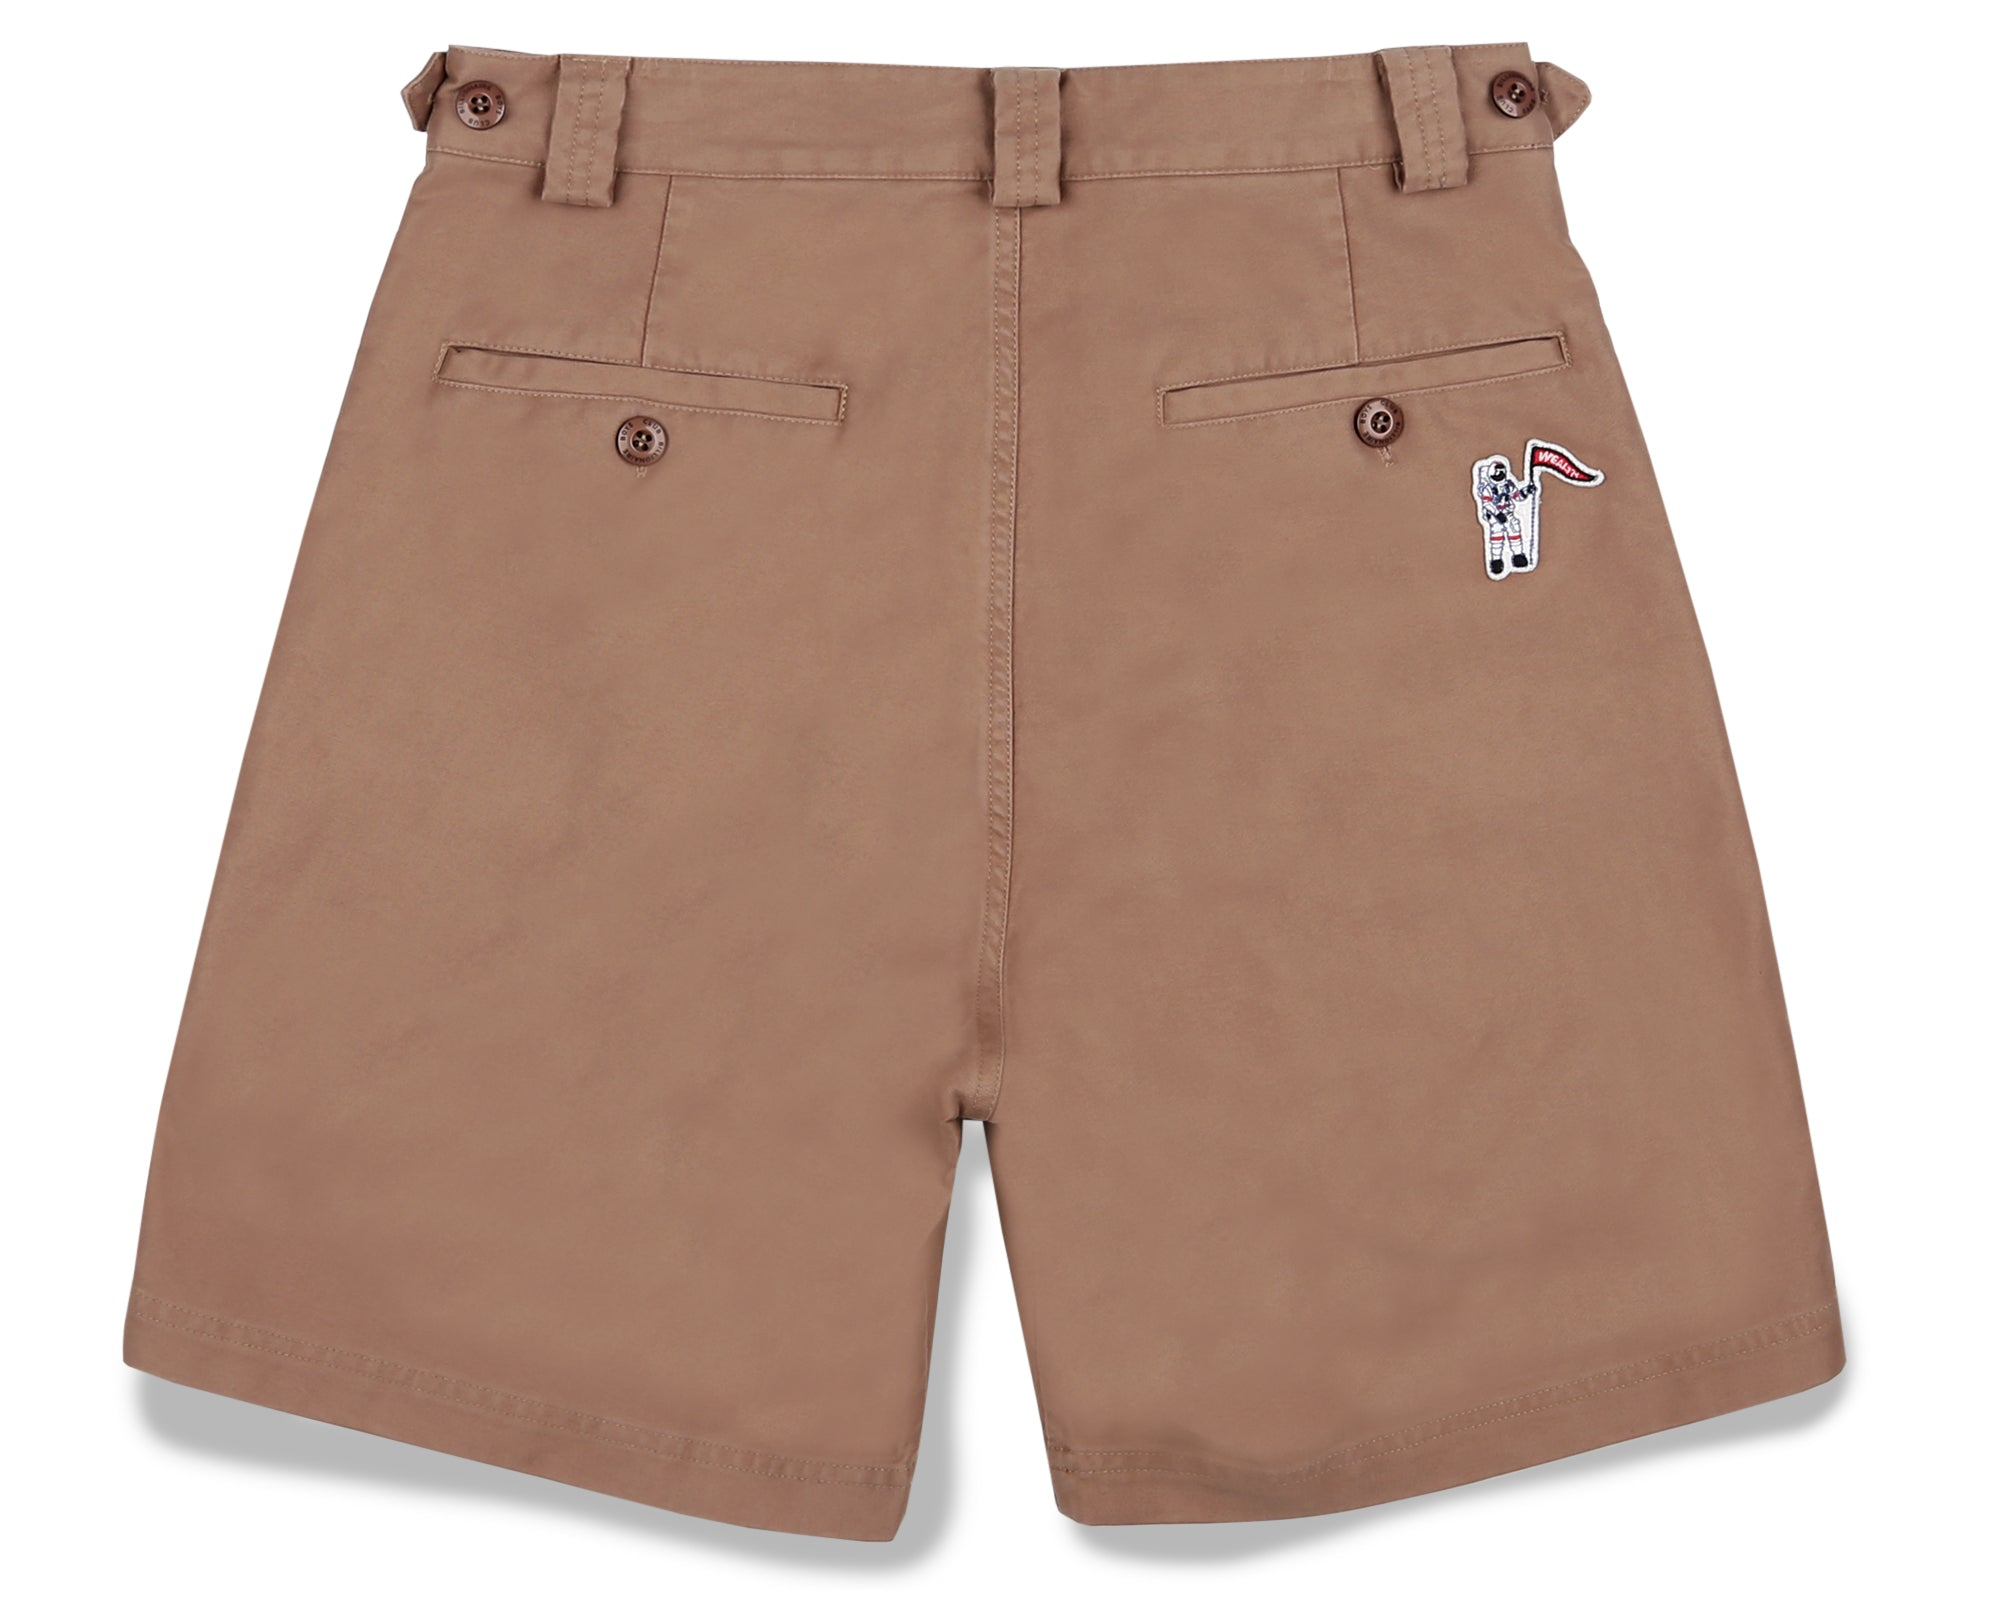 FIELD TRIP SHORT - BEIGE